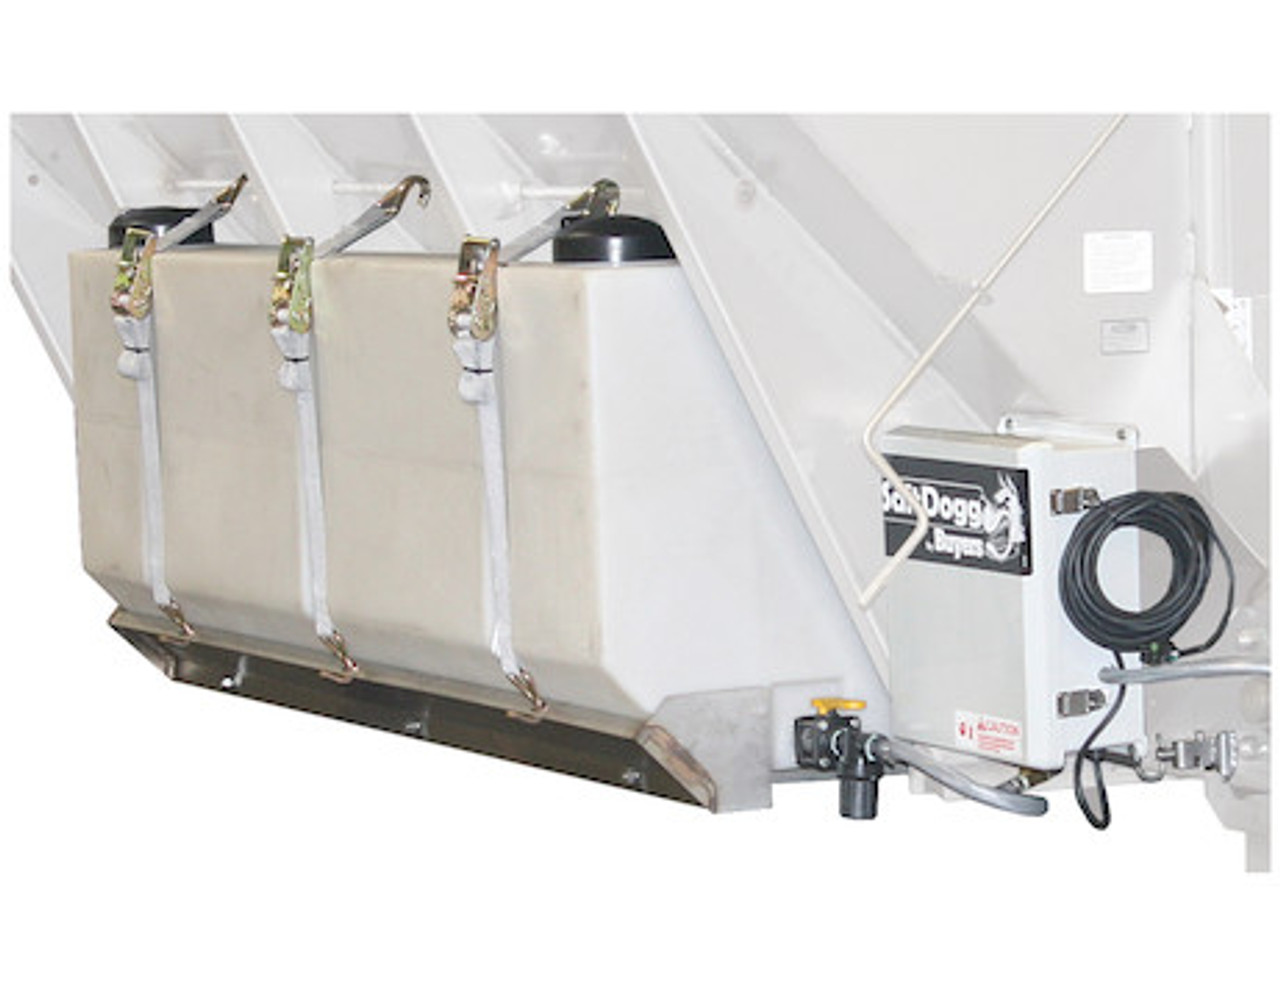 LS5 Buyers SaltDogg 12 VDC Pre-Wet Kit With Two 105-Gallon Wedge Poly V-Box Mount Reservoir Picture # 1